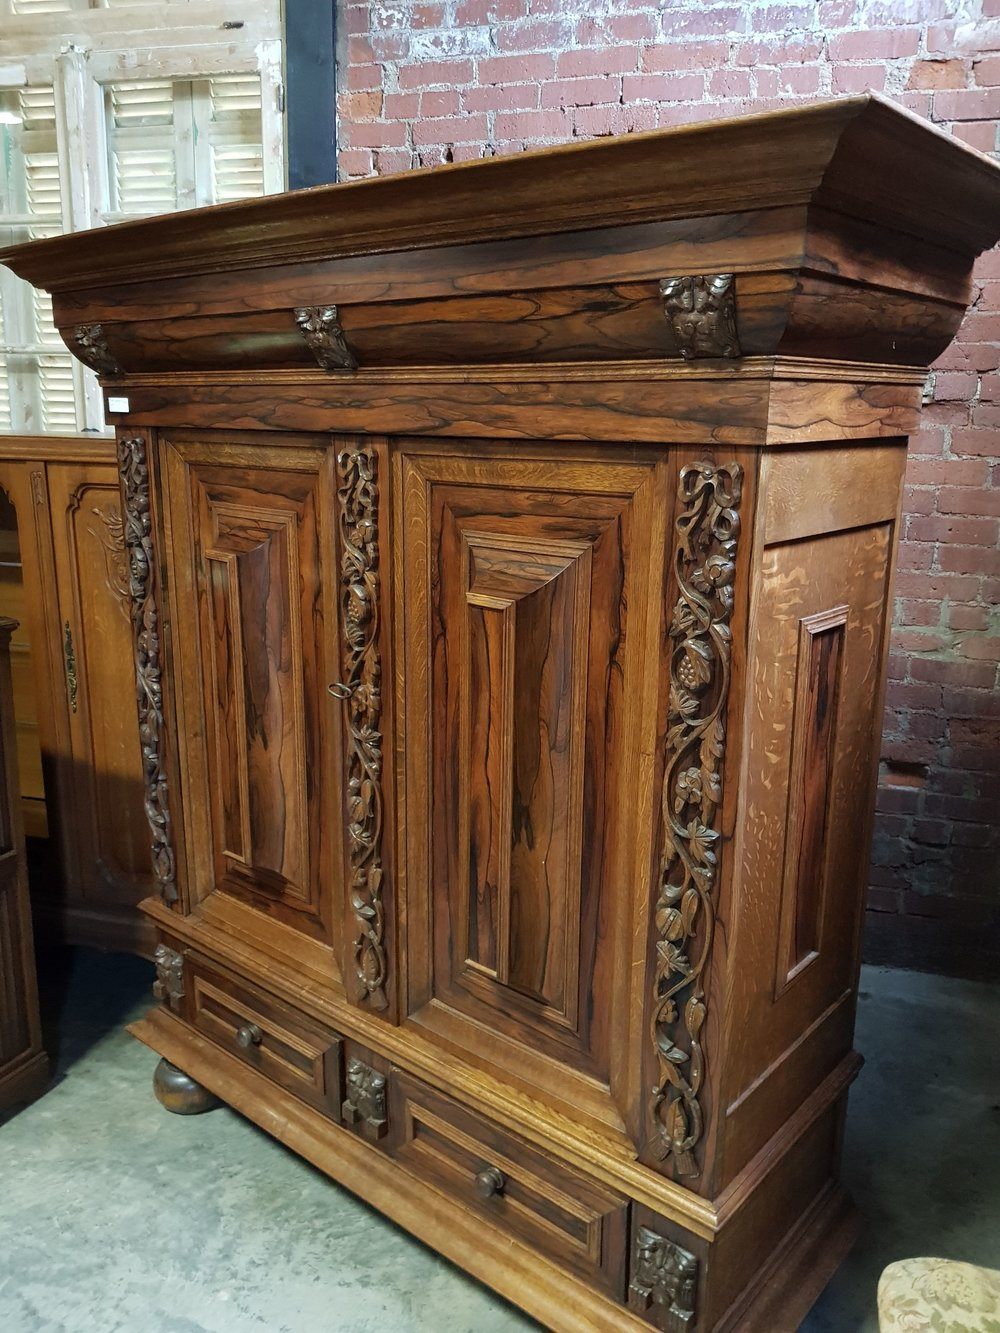 Just What Is A Dutch Pillow Cabinet?